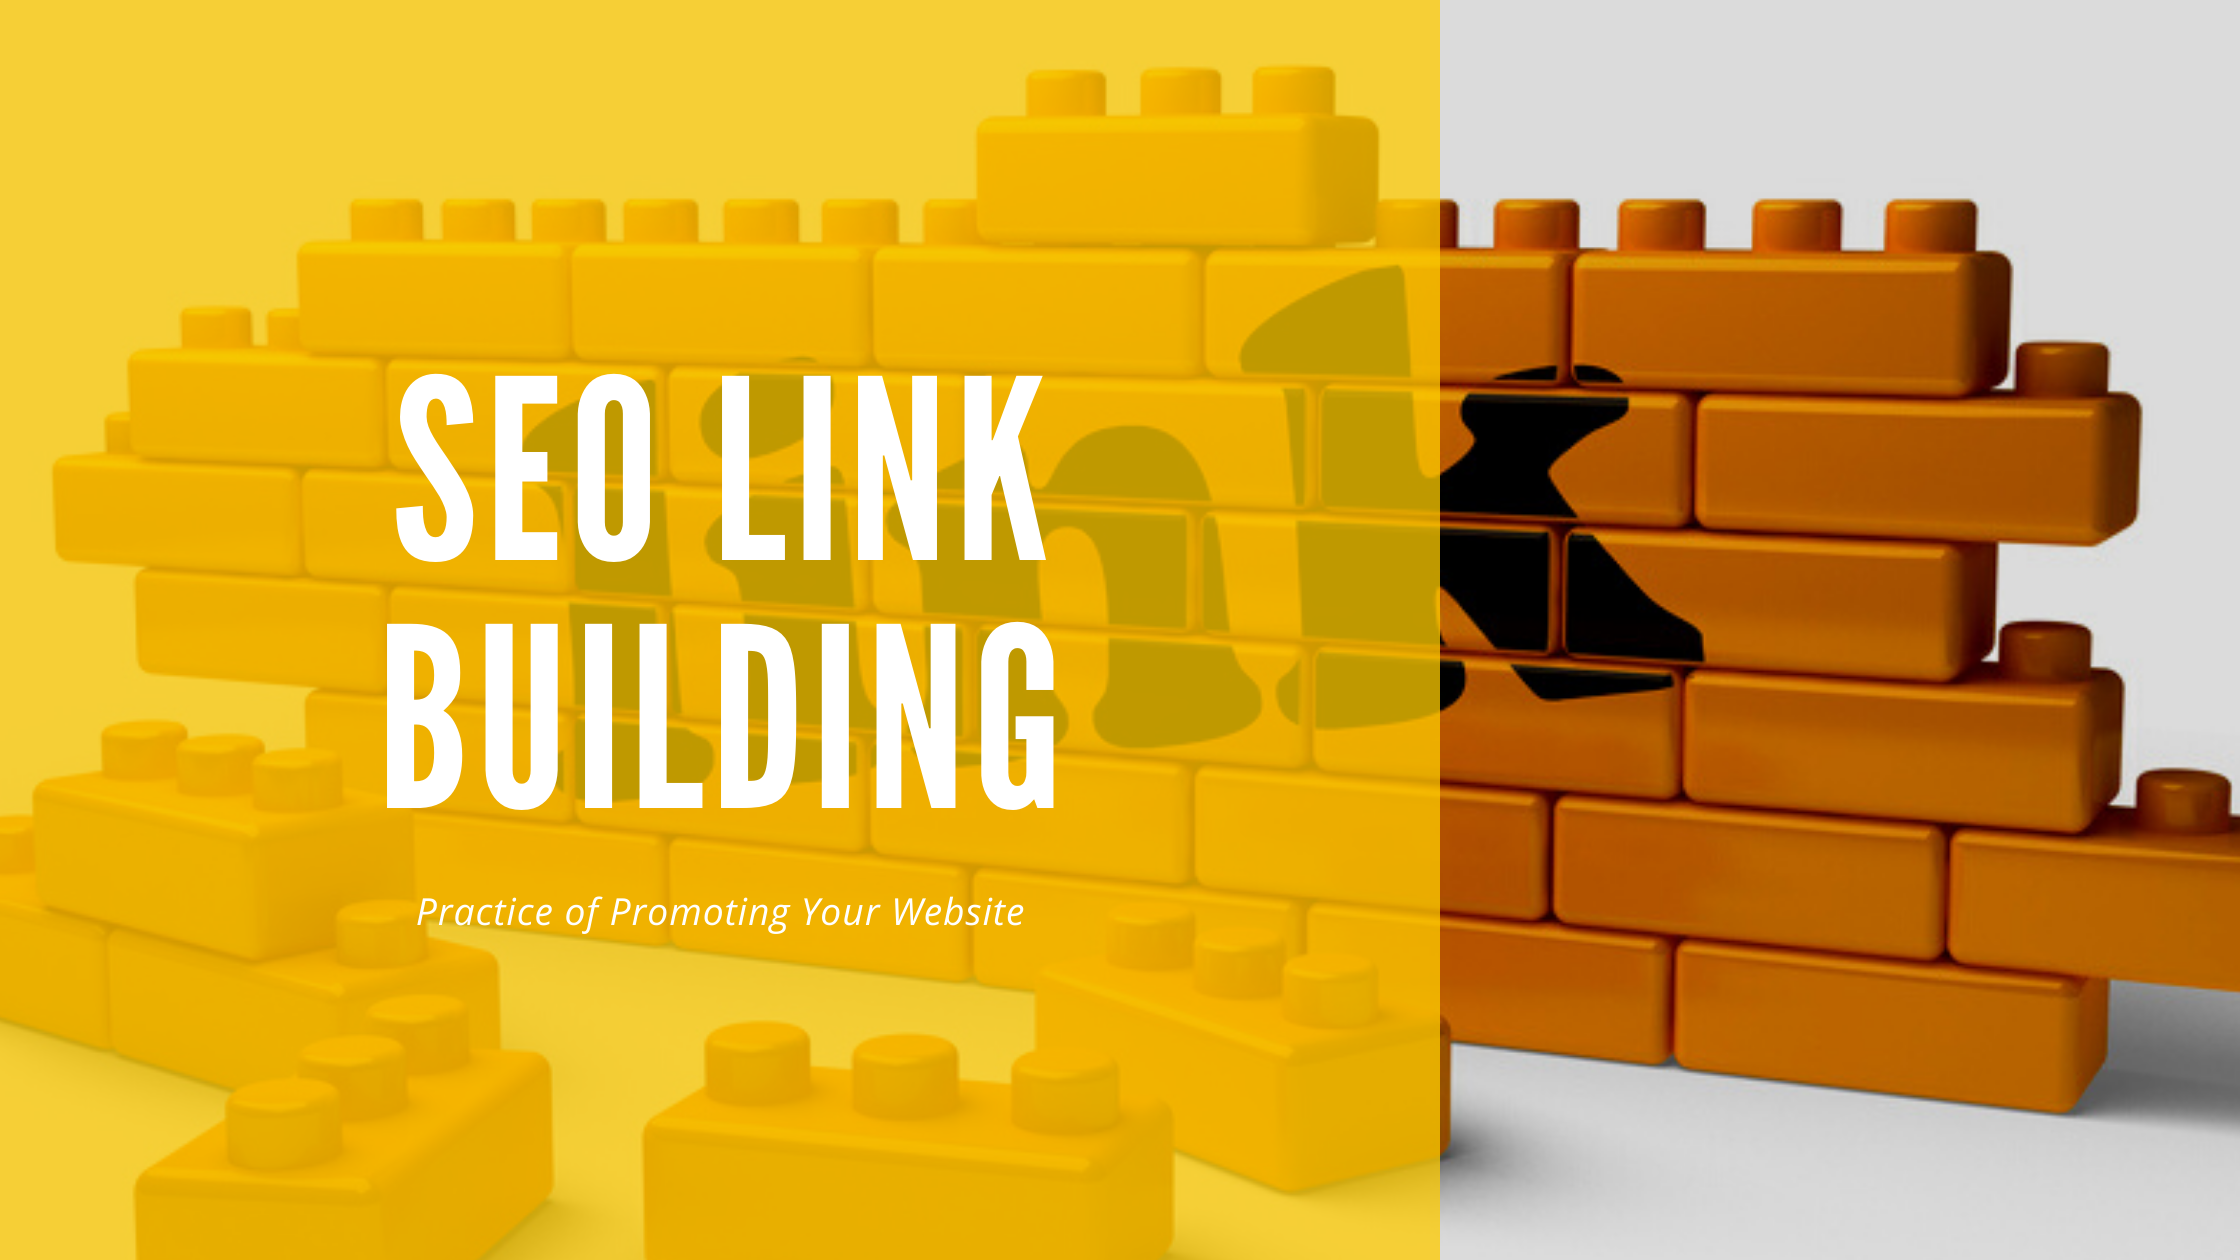 How to Make Your Link Building Campaign Effective?